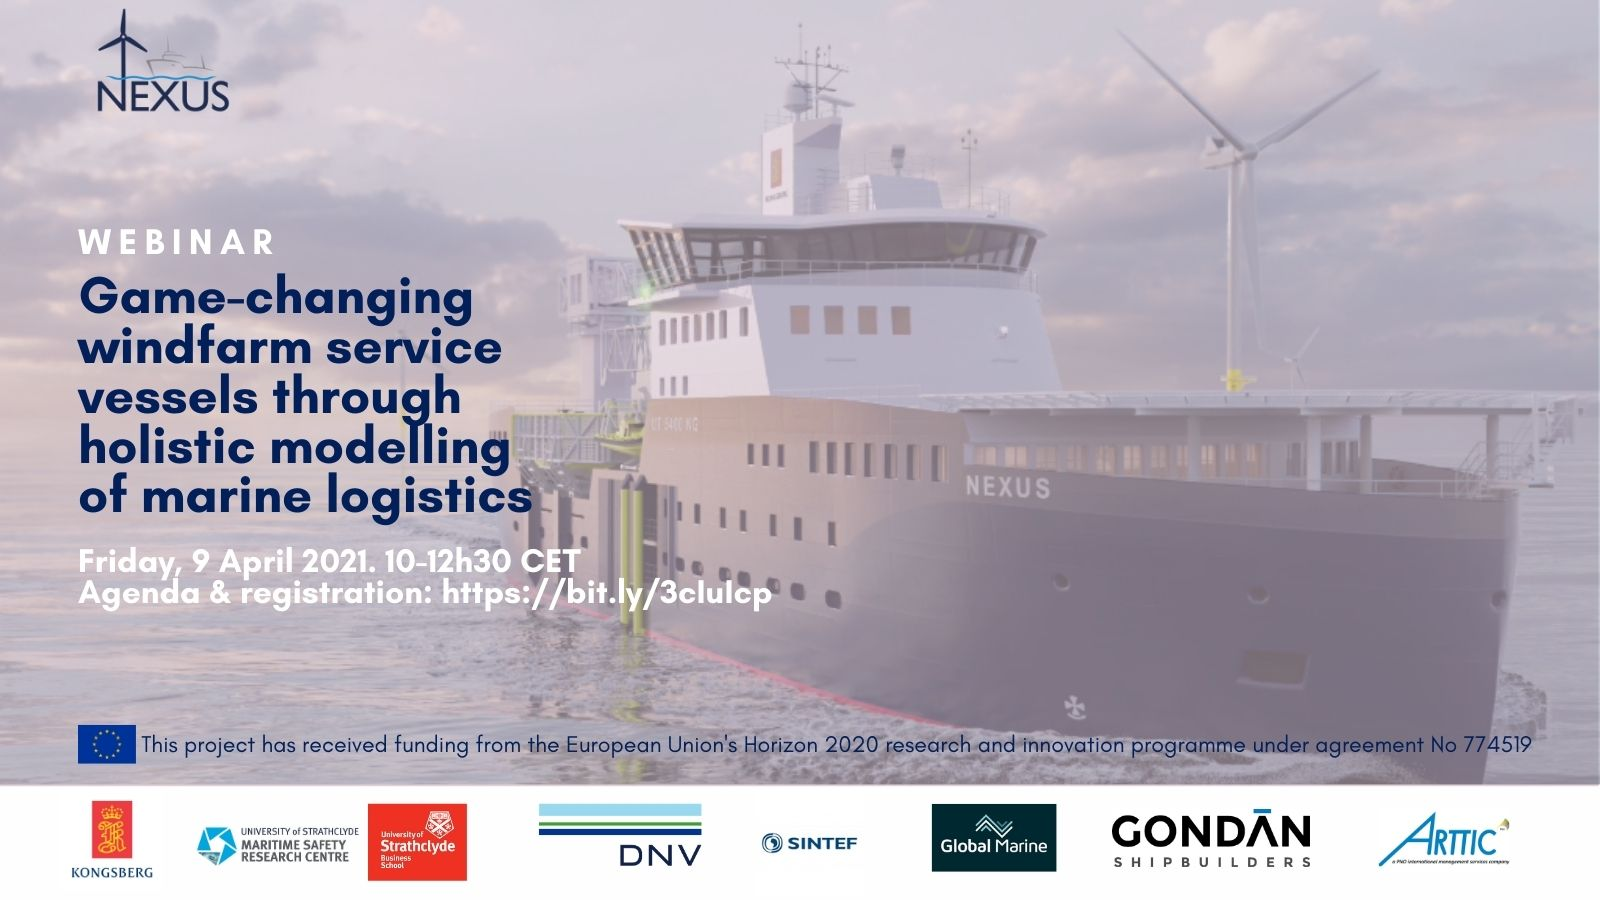 Horizontal-visual-social-media-19-03-1 Game-changing wind farm service vessels through holistic modelling of marine logistics